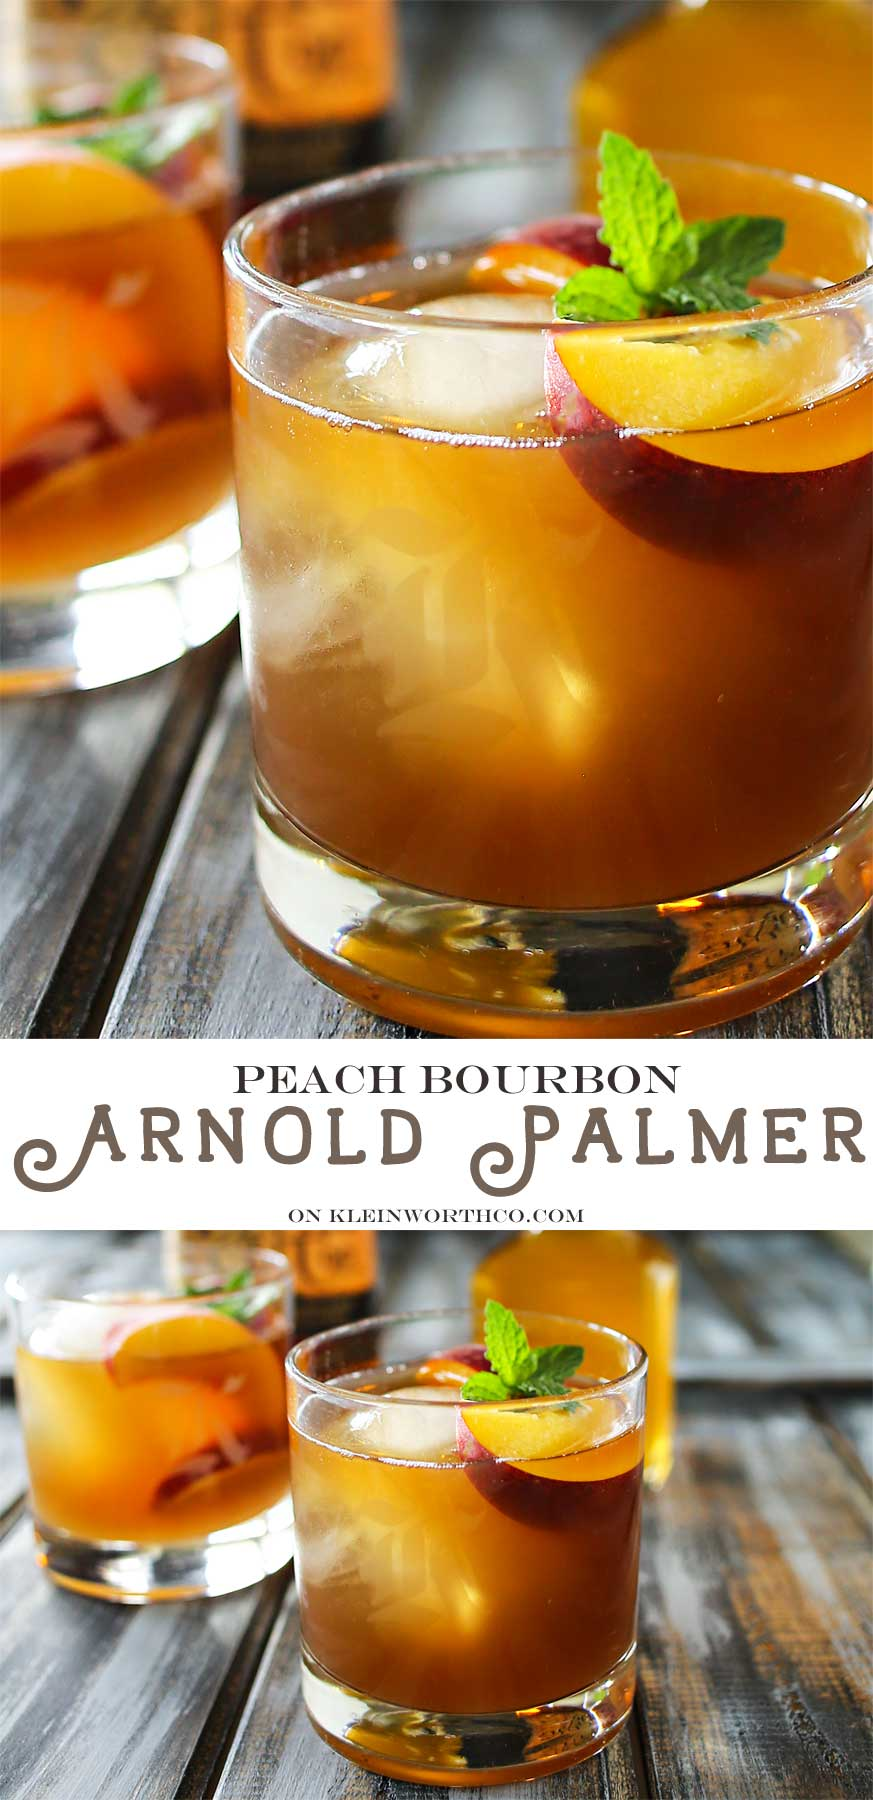 Peach Bourbon Arnold Palmer, a delightful twist on a classic refreshment. Take an Arnold Palmer & add bourbon & peach liqueur for a perfect summer cocktail.